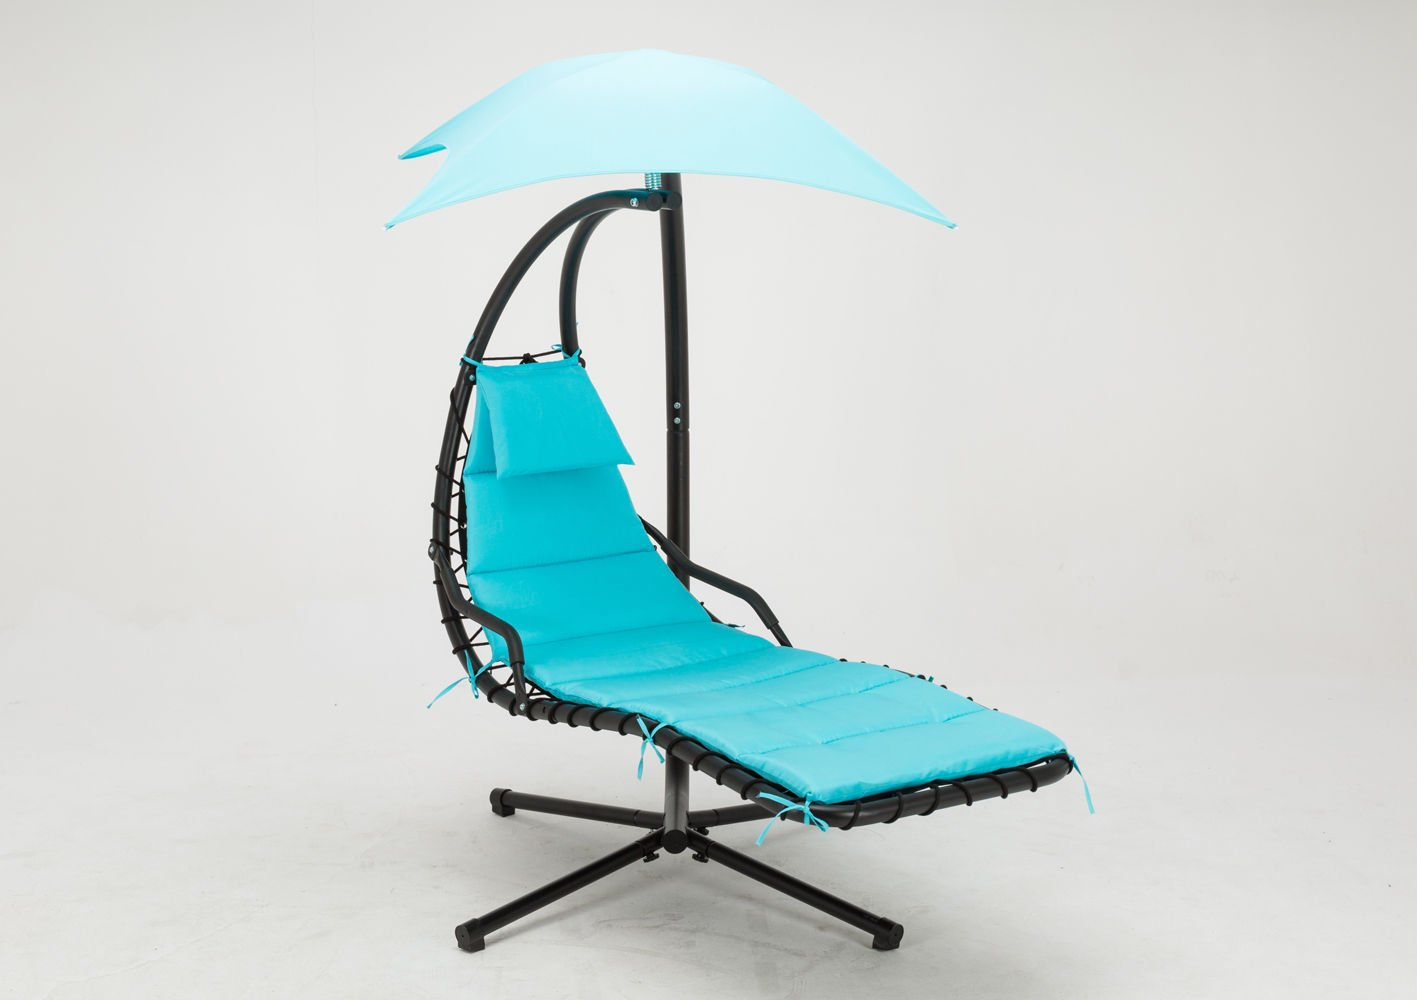 Mcombo Hanging Chaise Lounger Chair Arc Stand Air Porch Swing Hammock Chair Canopy Umbrella, Teal